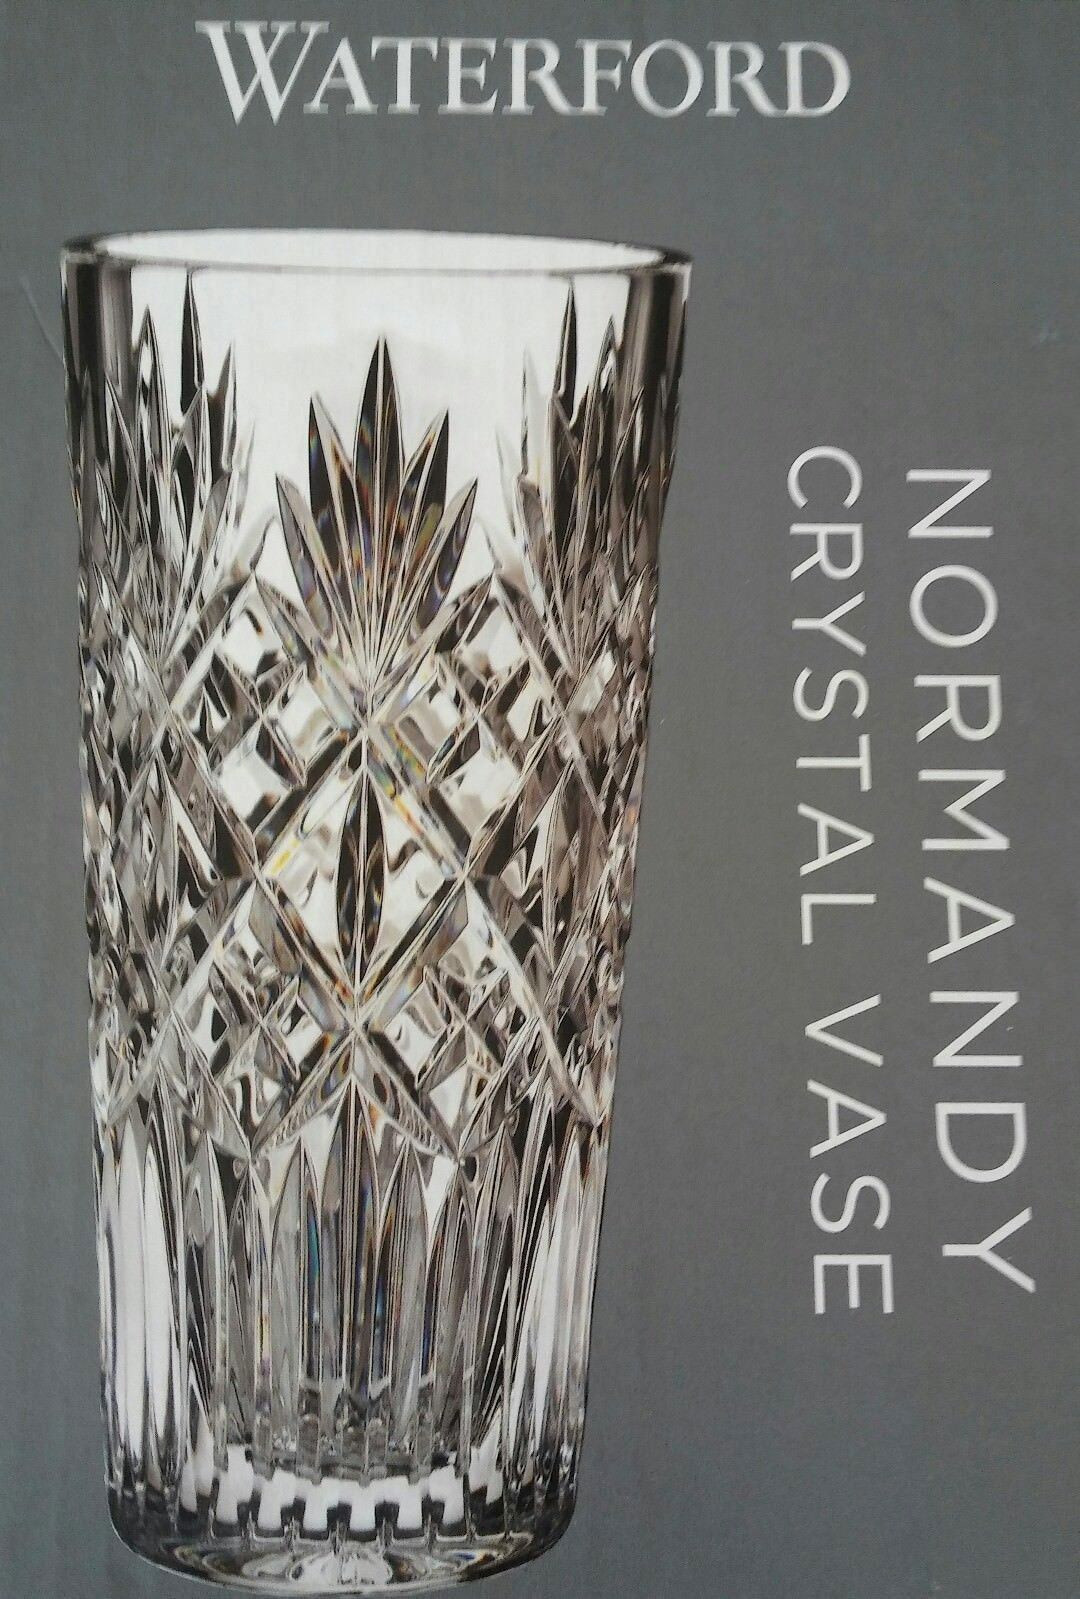 Waterford 6 Inch Vase Of Waterford normandy Vase 10 Tall Lead Crystal 79 99 Picclick Regarding 1 Of 5 See More